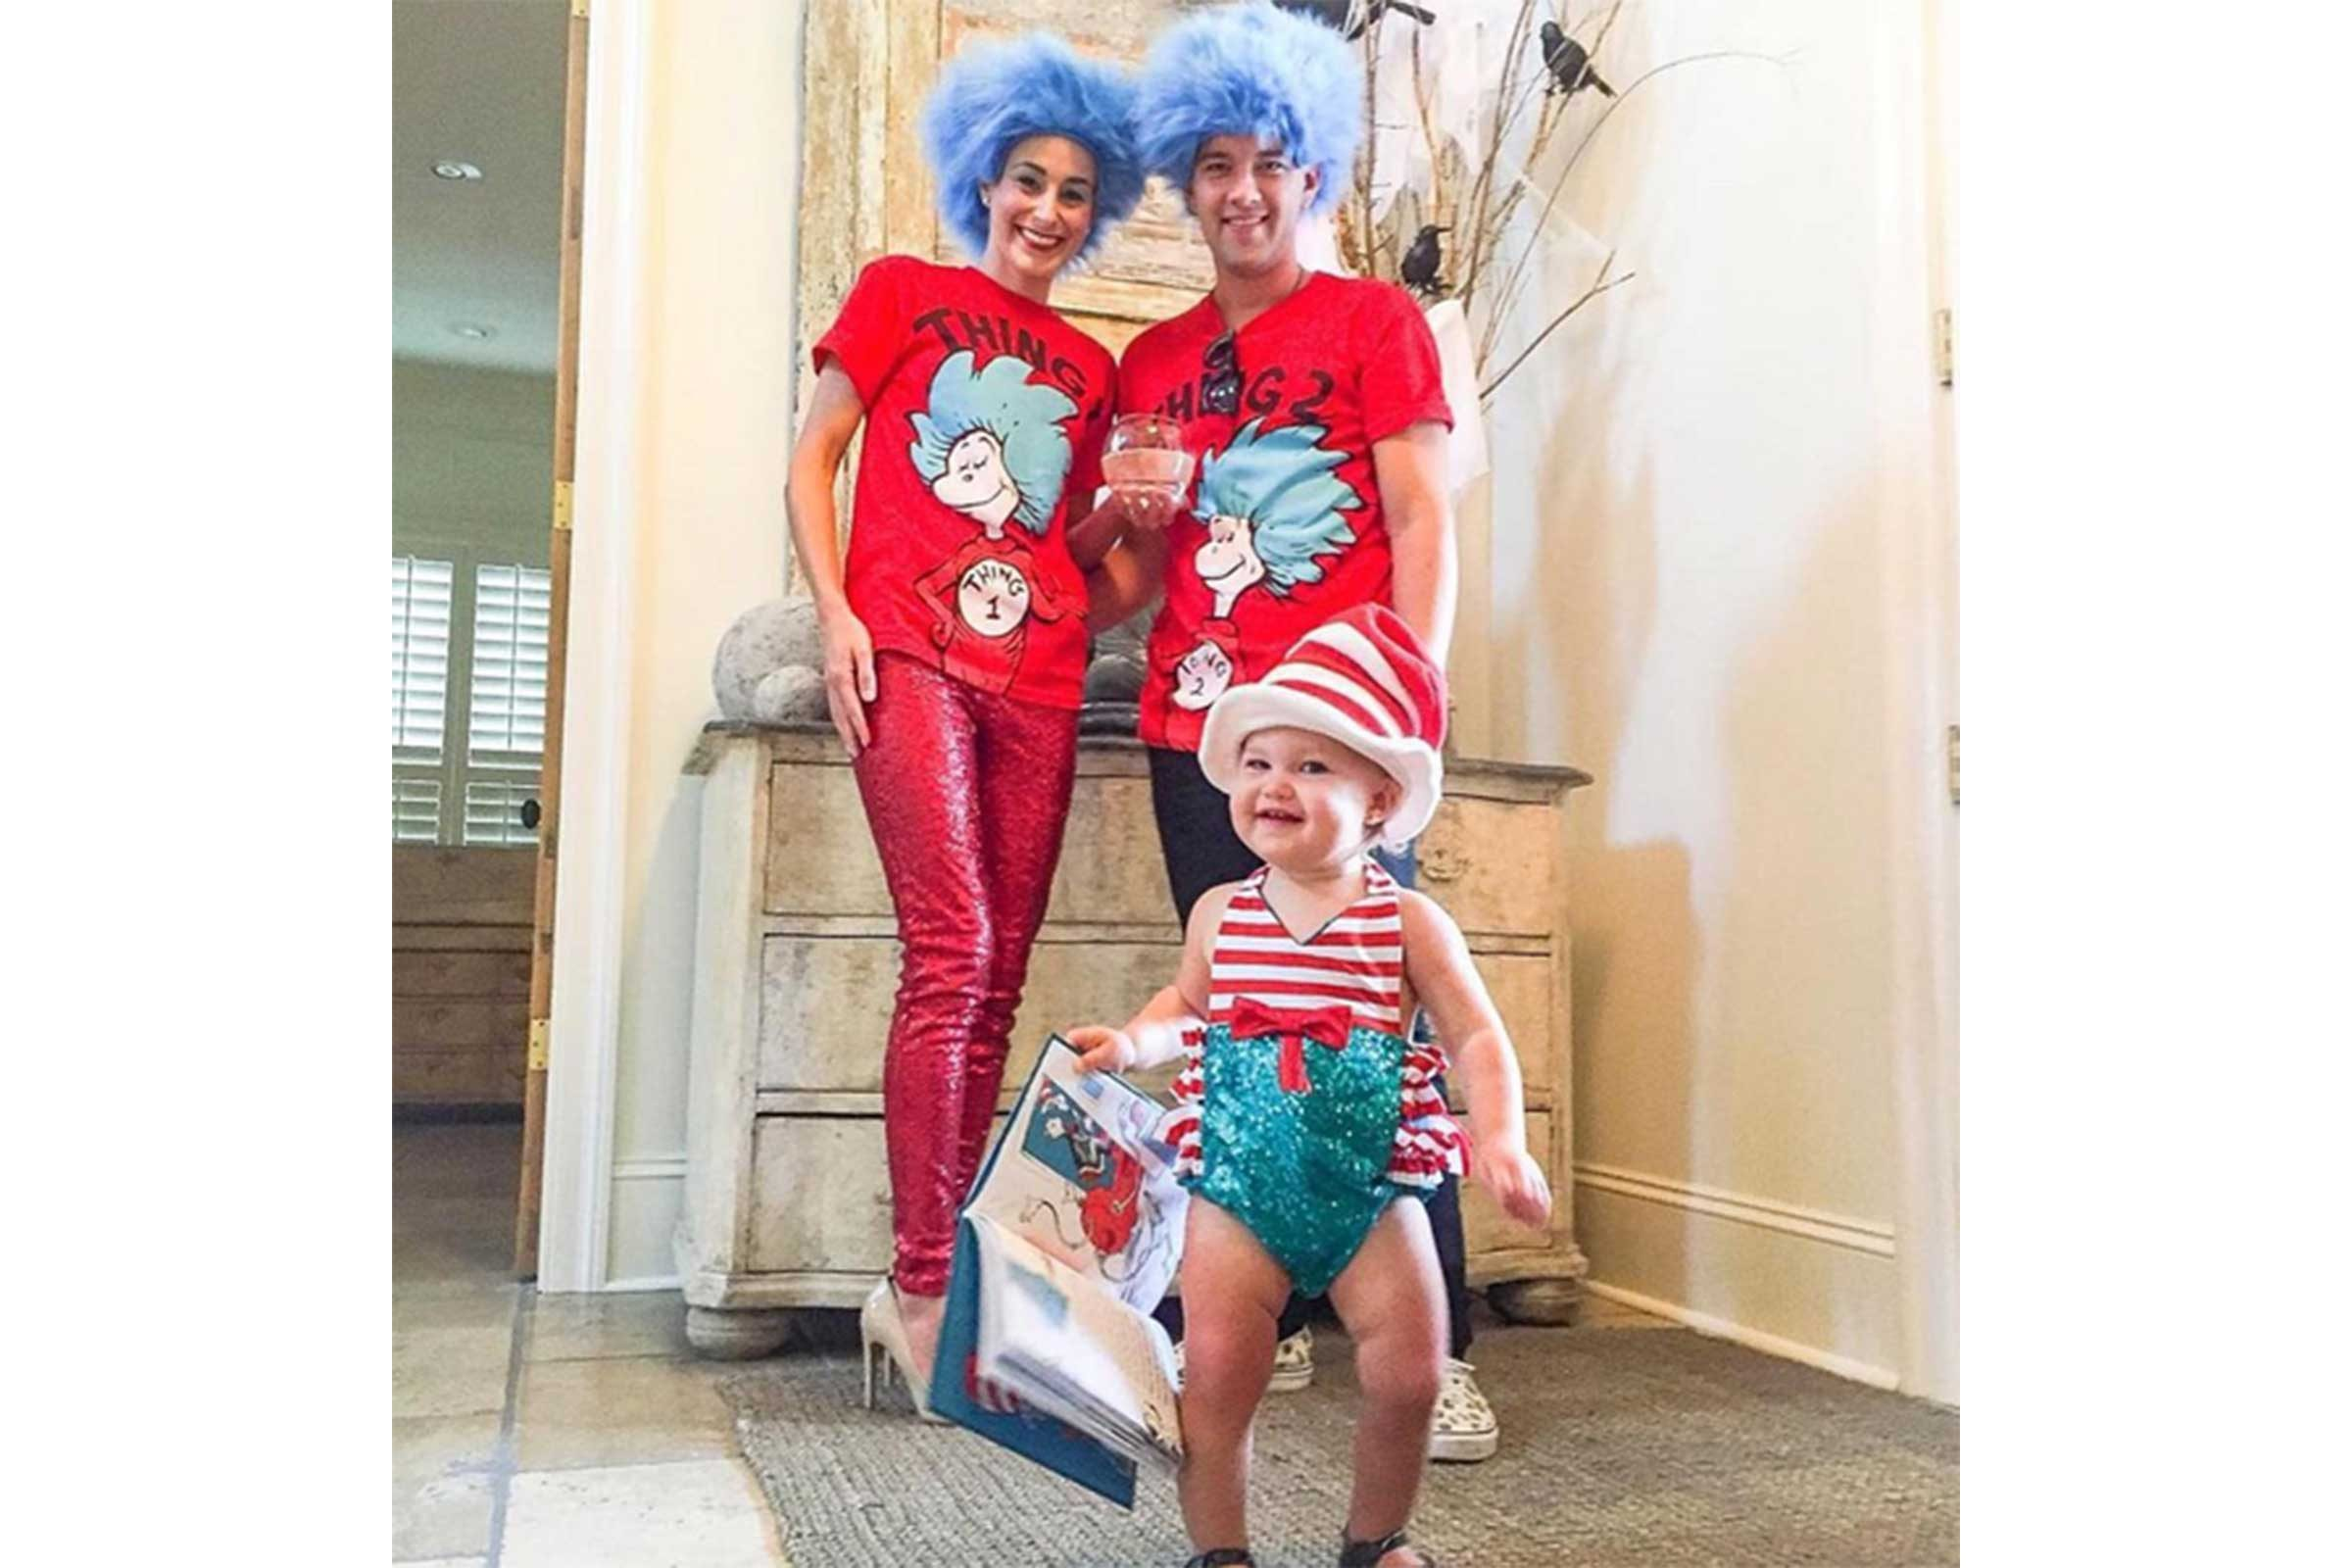 Thing 1 Thing 2 and The Cat in the Hat  sc 1 st  Readeru0027s Digest & Mom and Baby Halloween Costumes | Readeru0027s Digest